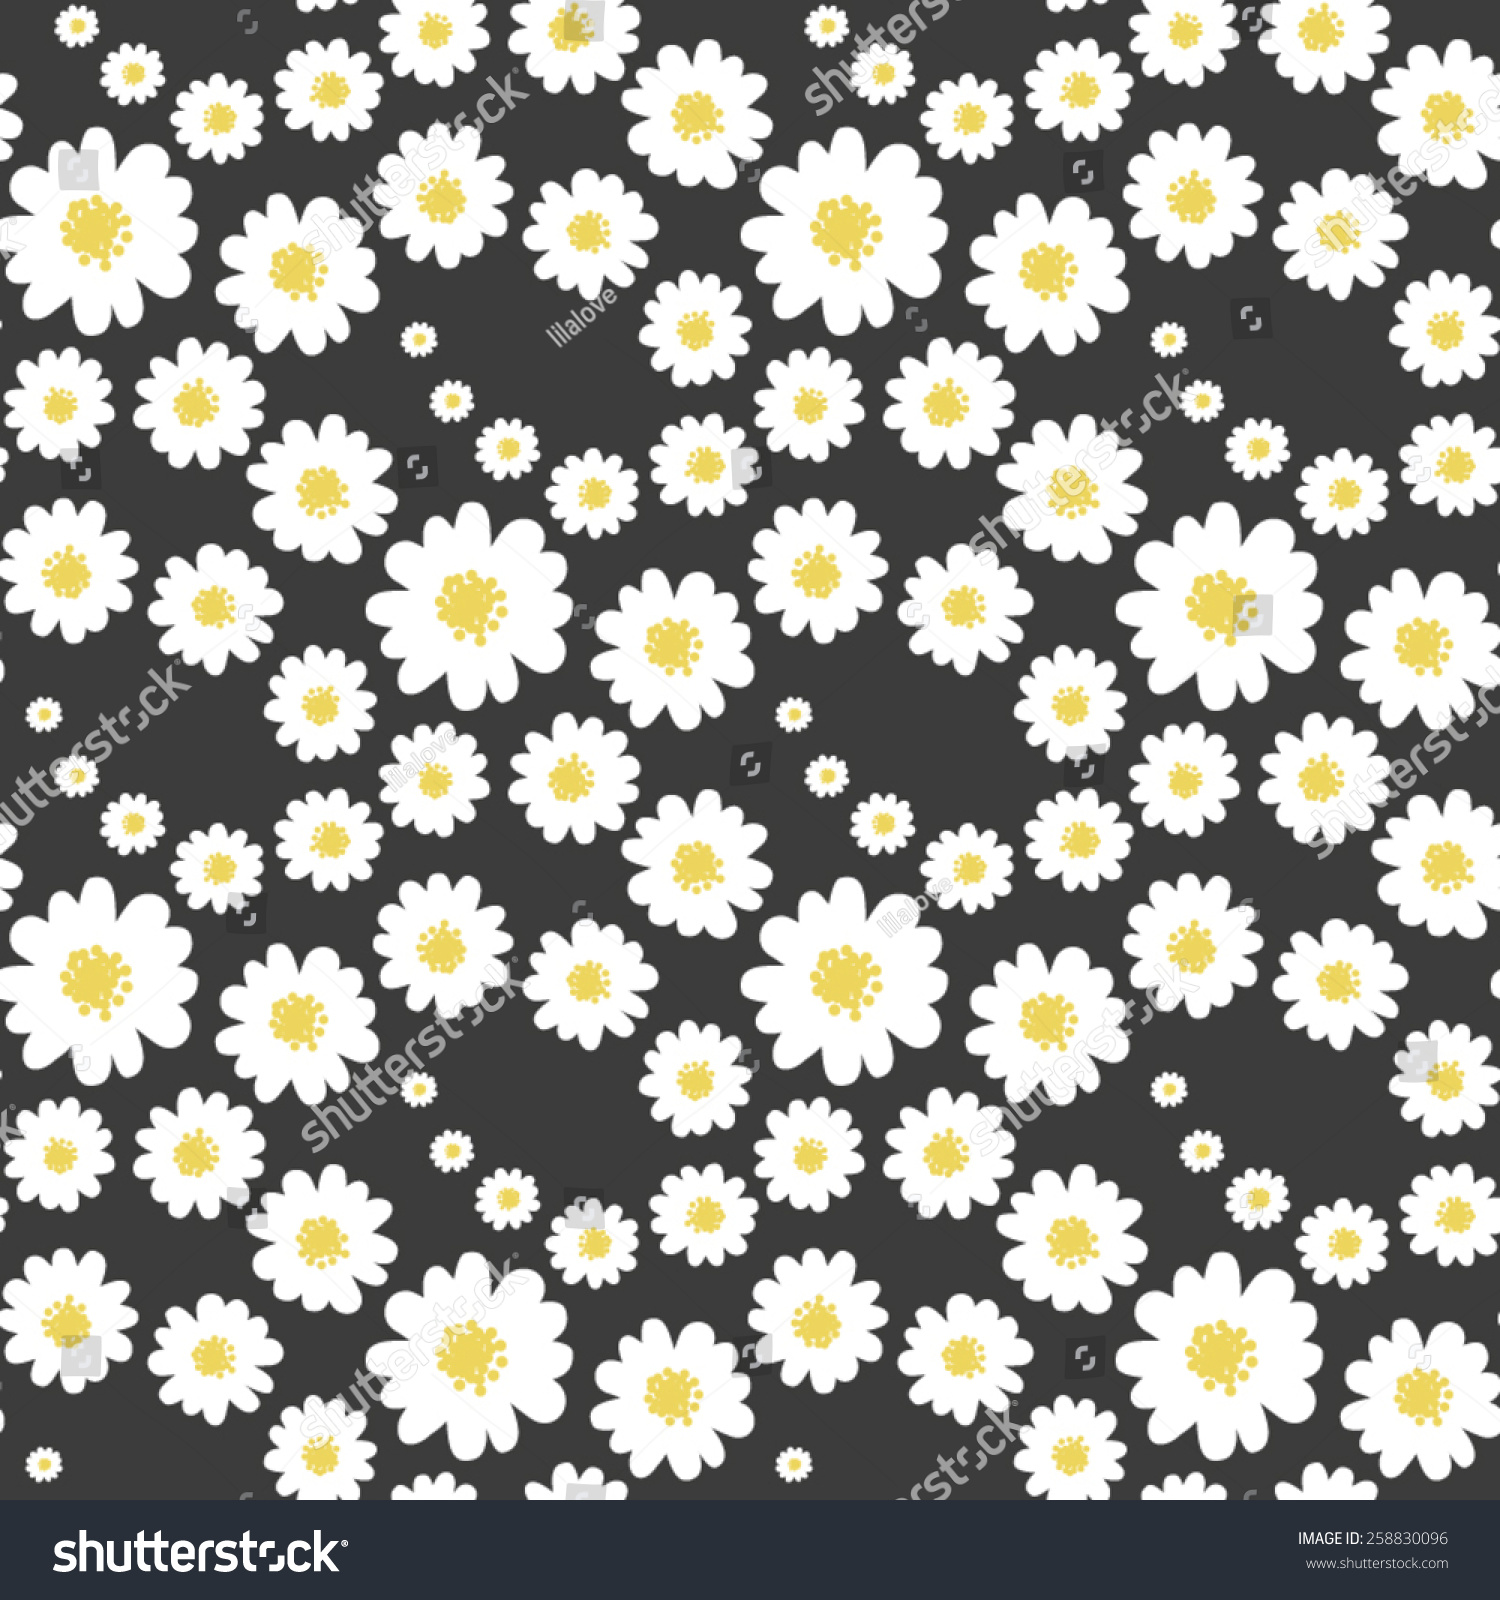 White Daisies Flower Seamless Pattern On Stock Vector ...